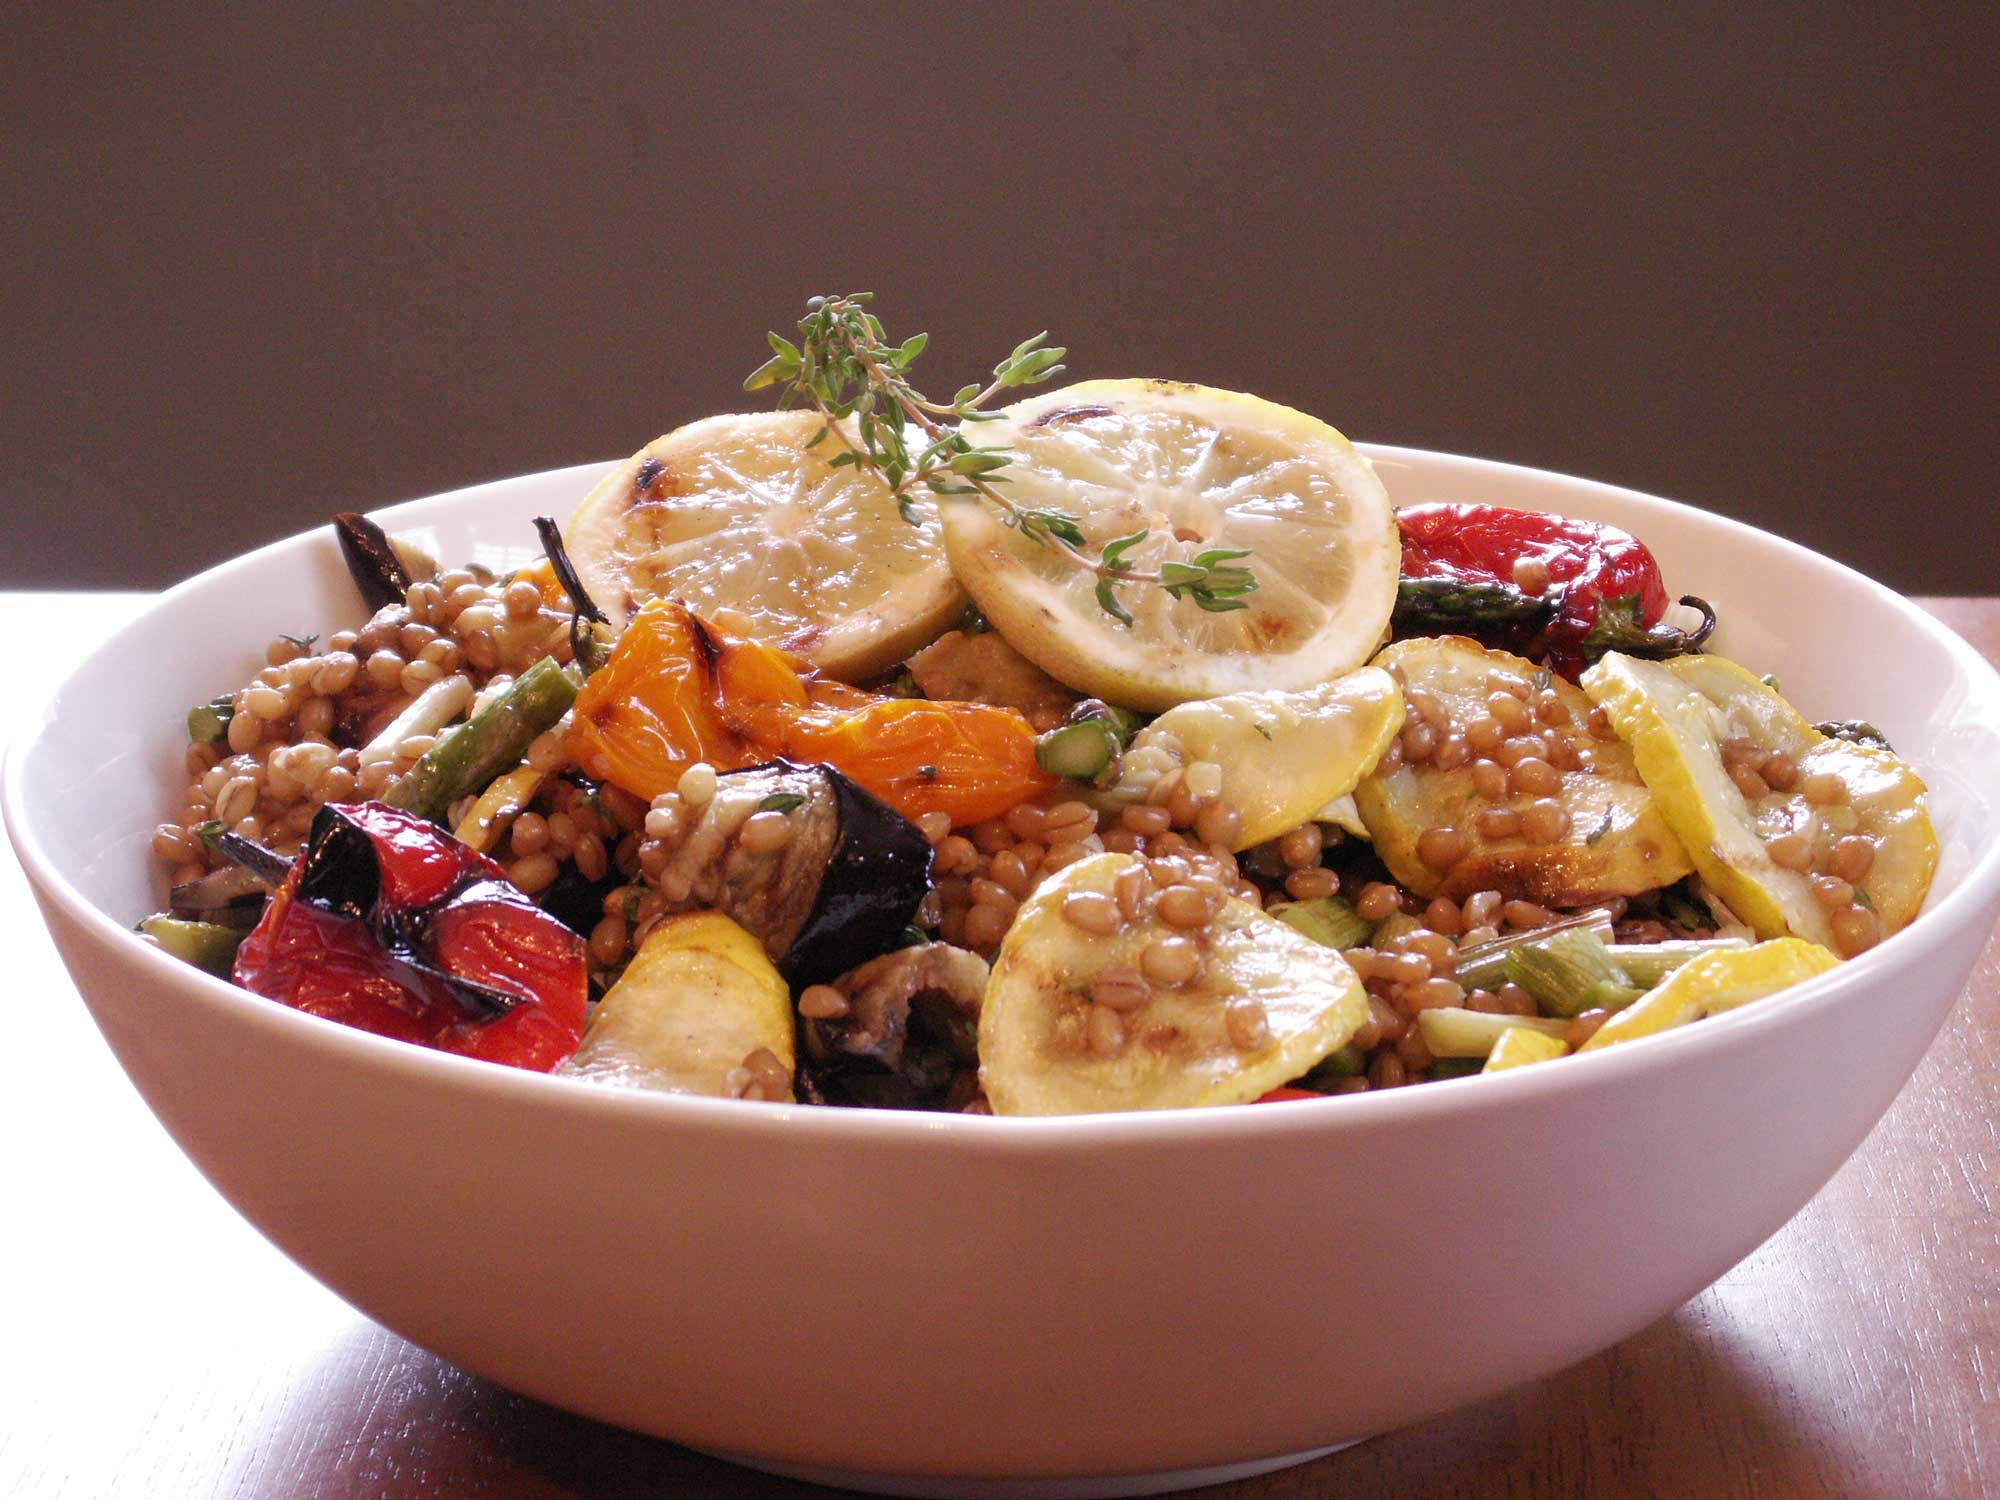 Grilled Vegetable and wheat berry salad